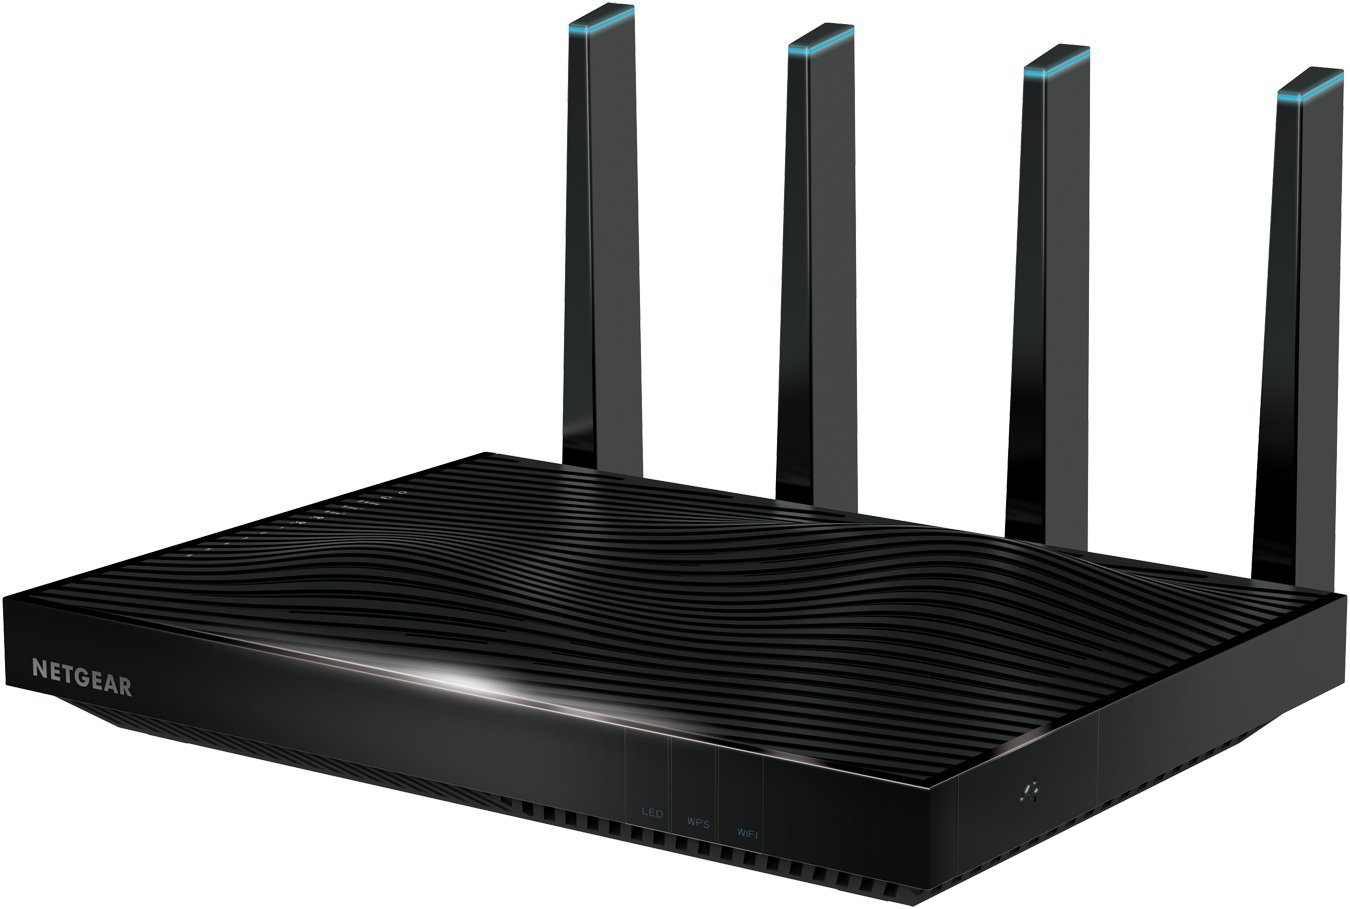 NETGEAR R8500-100NAS WiFi Router (Discontinued)